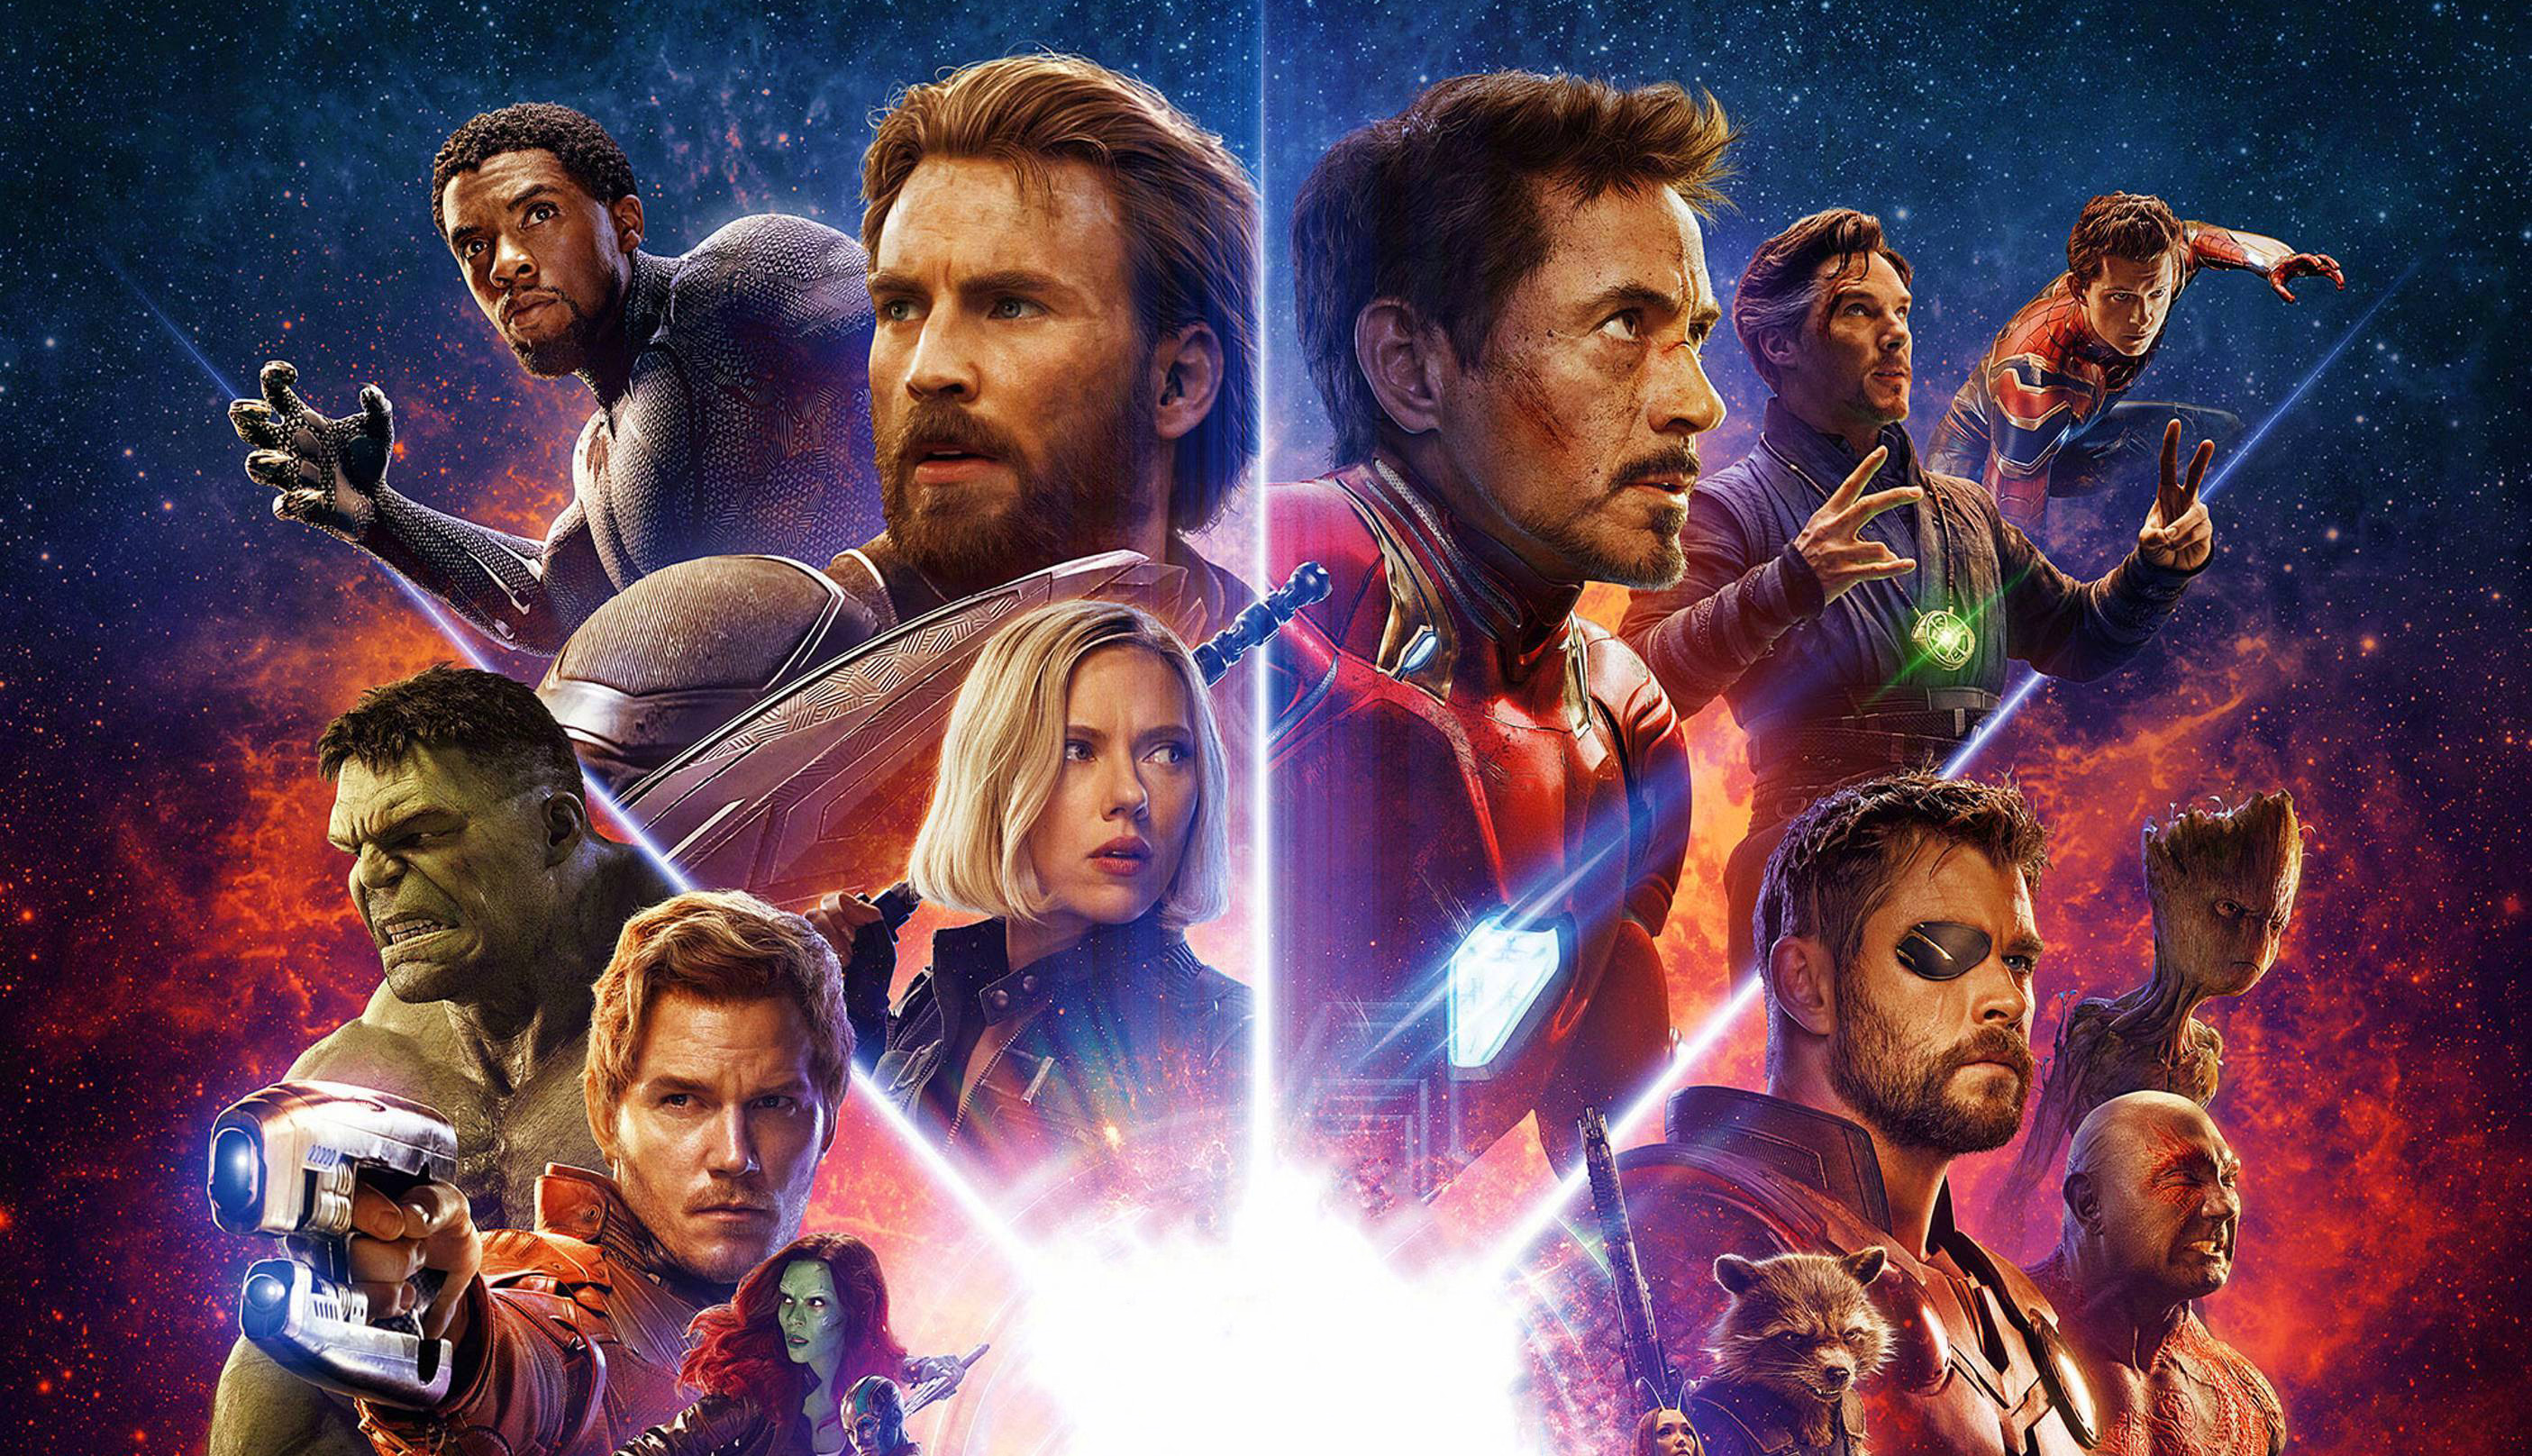 Wallpaper Avengers Endgame Avengers 4 Hd Movies 16872: Avengers Infinity War Imax Poster, HD Movies, 4k